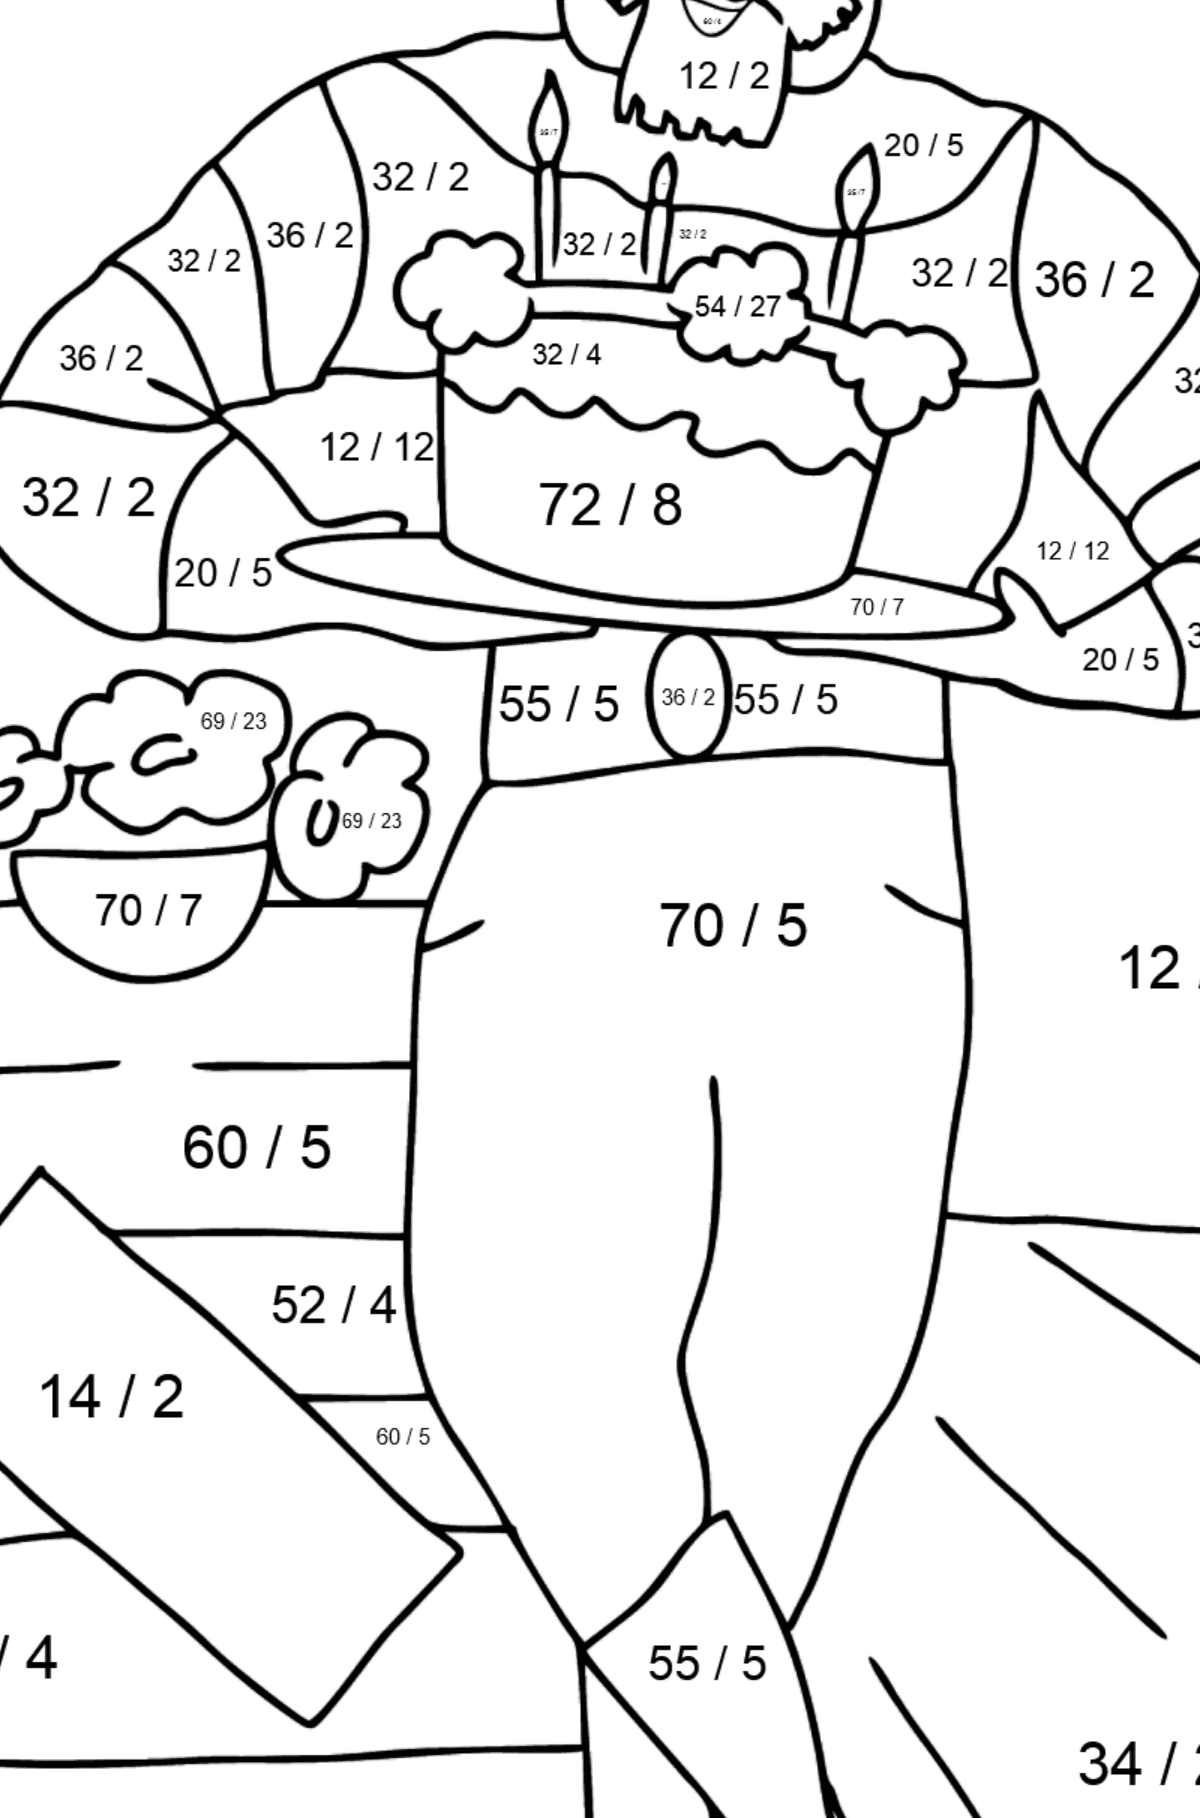 Coloring Page - A Pirate with Cake - Math Coloring - Division for Kids